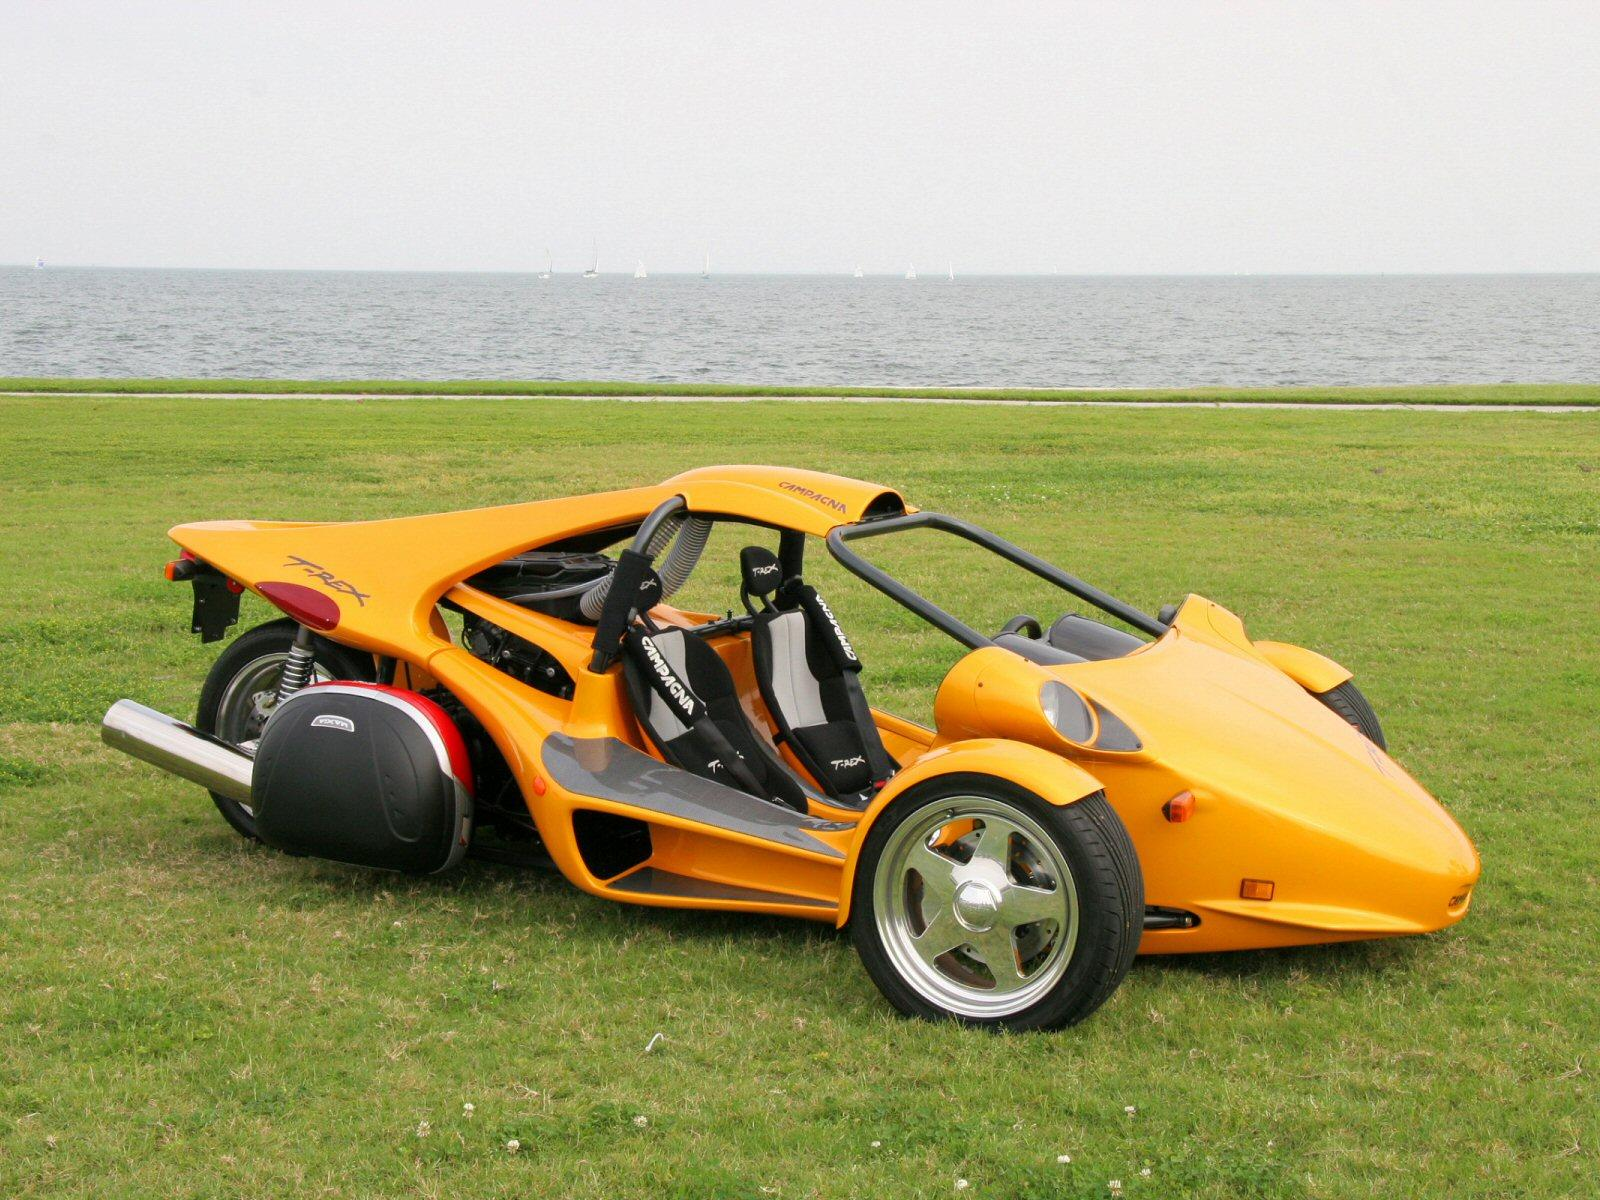 Campagna T-Rex photos - PhotoGallery with 15 pics ...